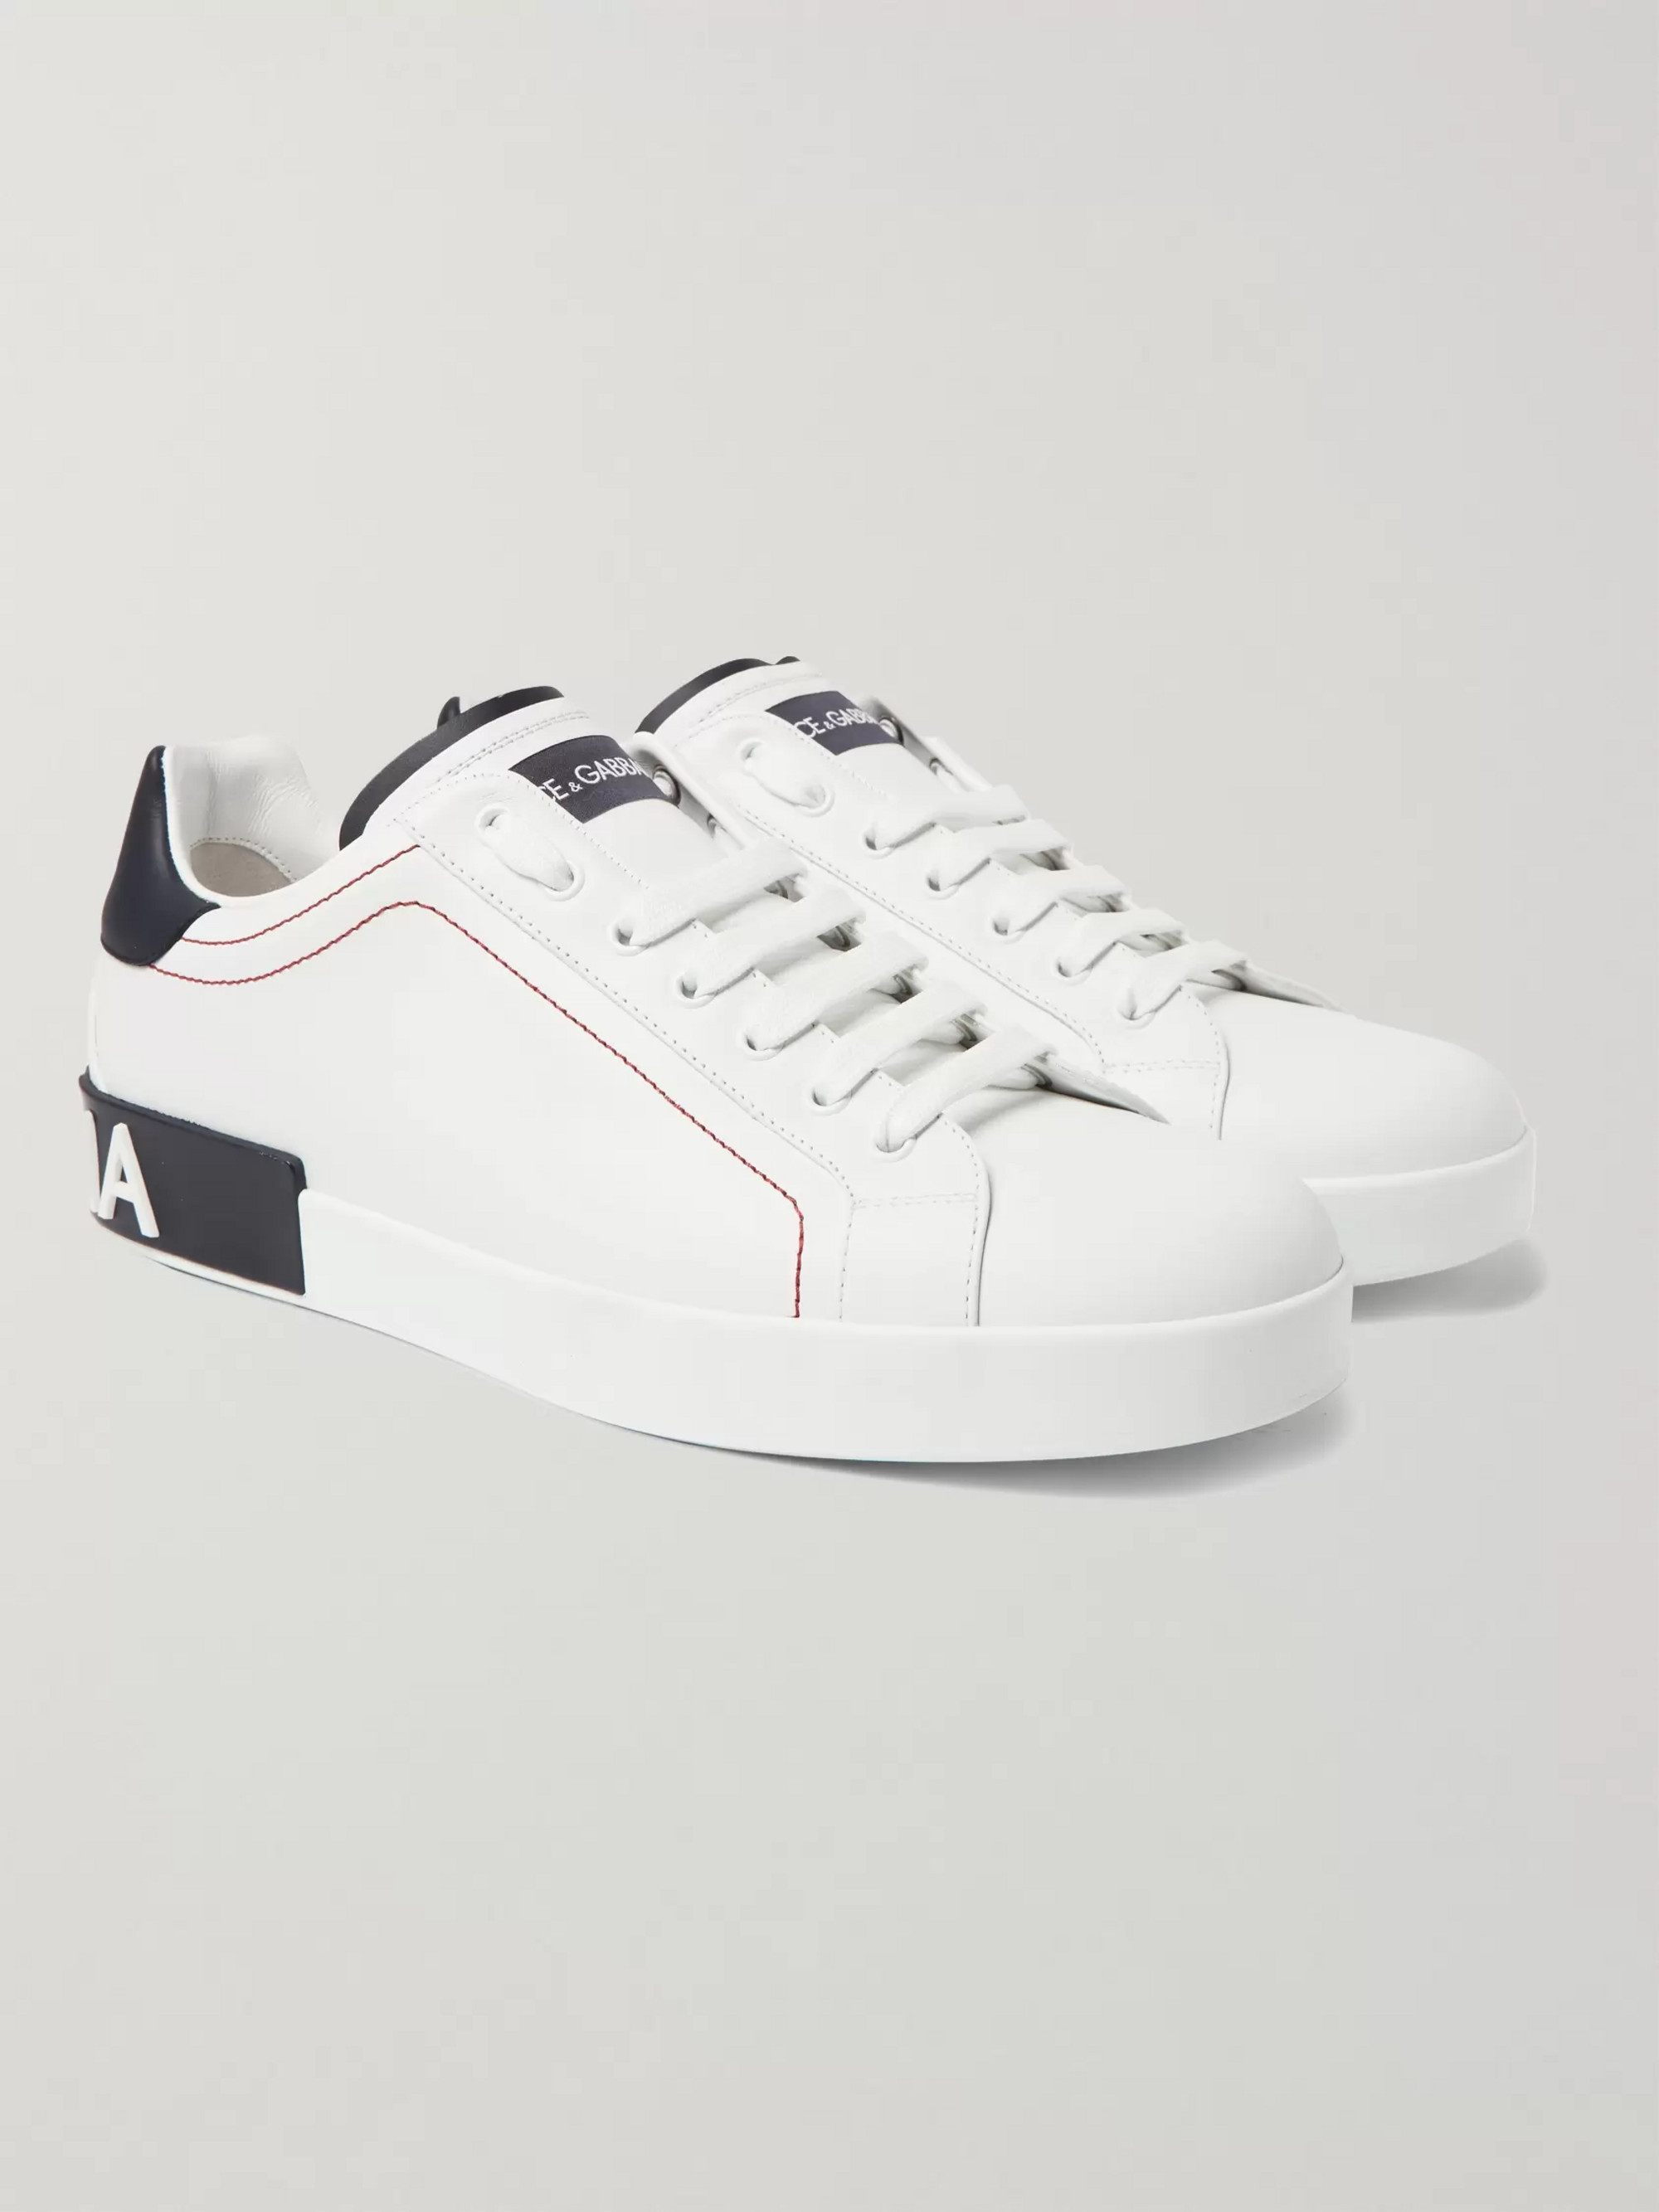 Dolce & Gabbana Logo-Detailed Leather Sneakers